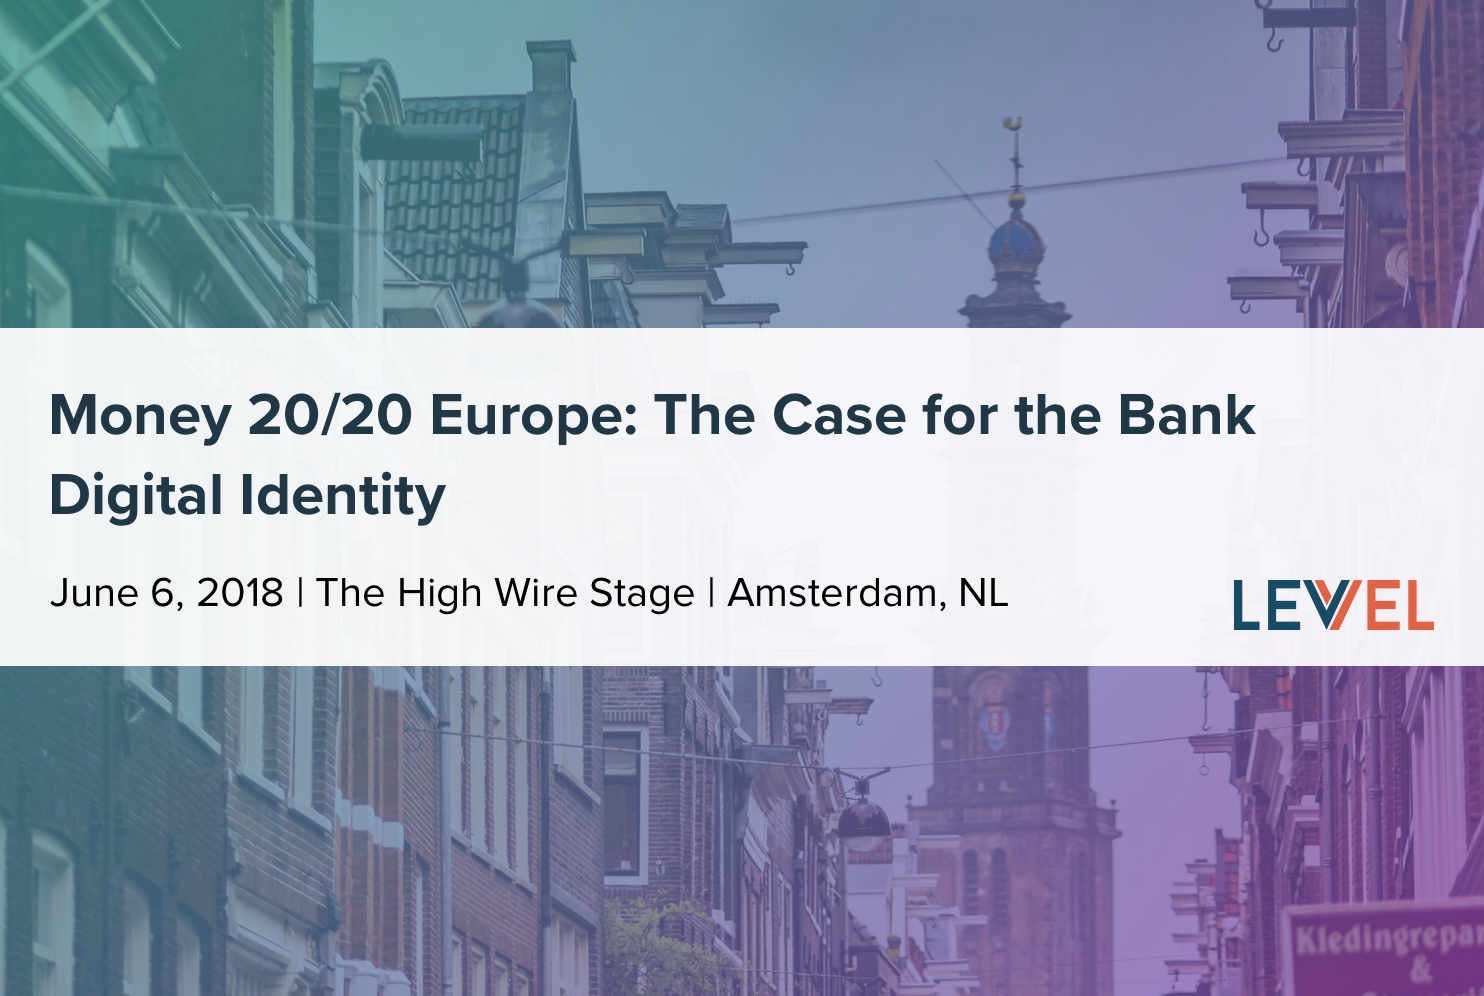 Money 20/20 EU: The Case for the Bank Digital Identity